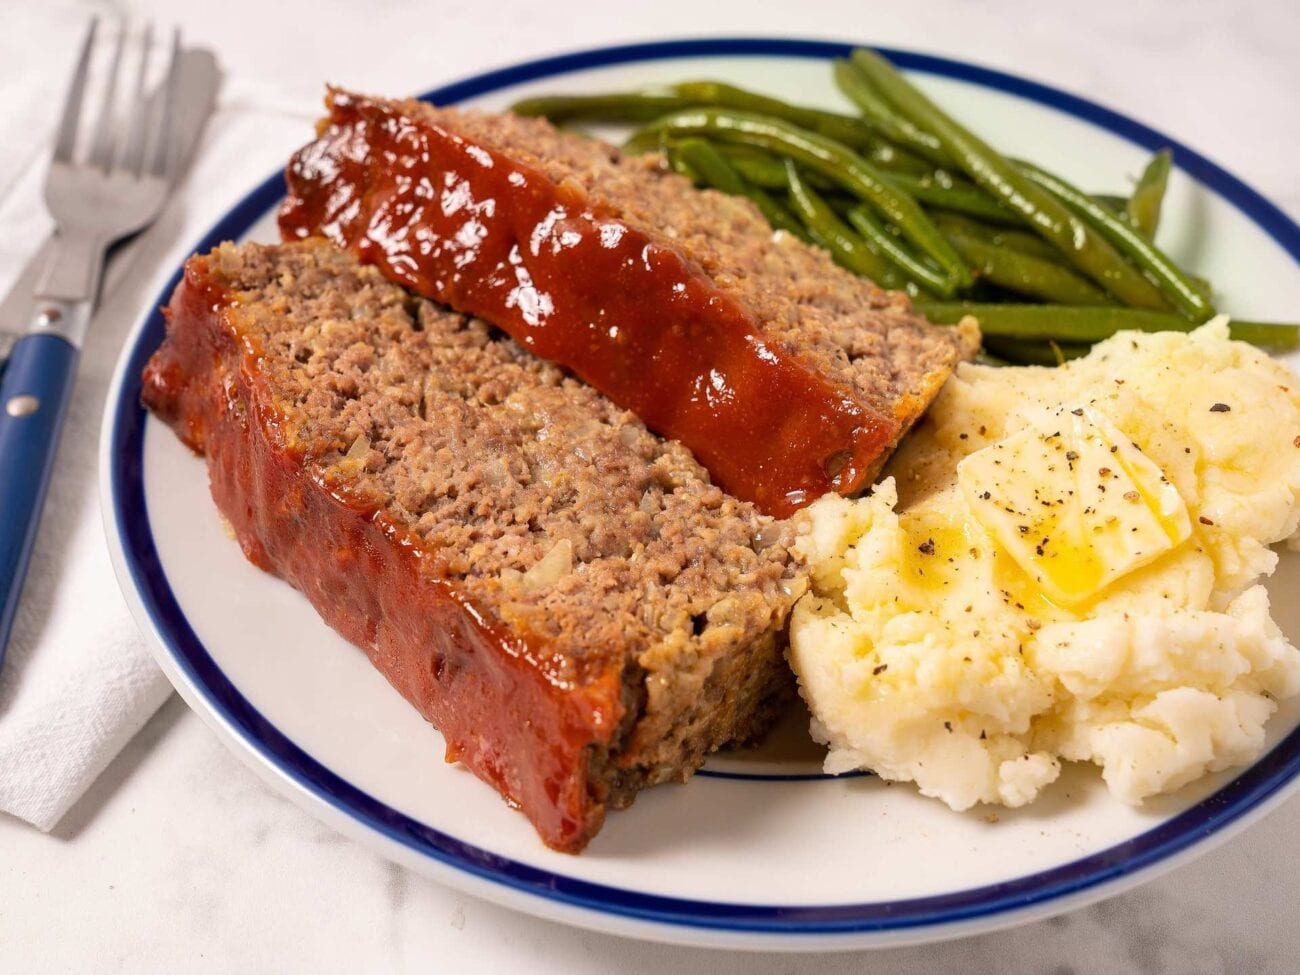 A nice, home-cooked meal is one of the best things to end your day. In the mood for meatloaf? Taste the best recipes we have to offer.